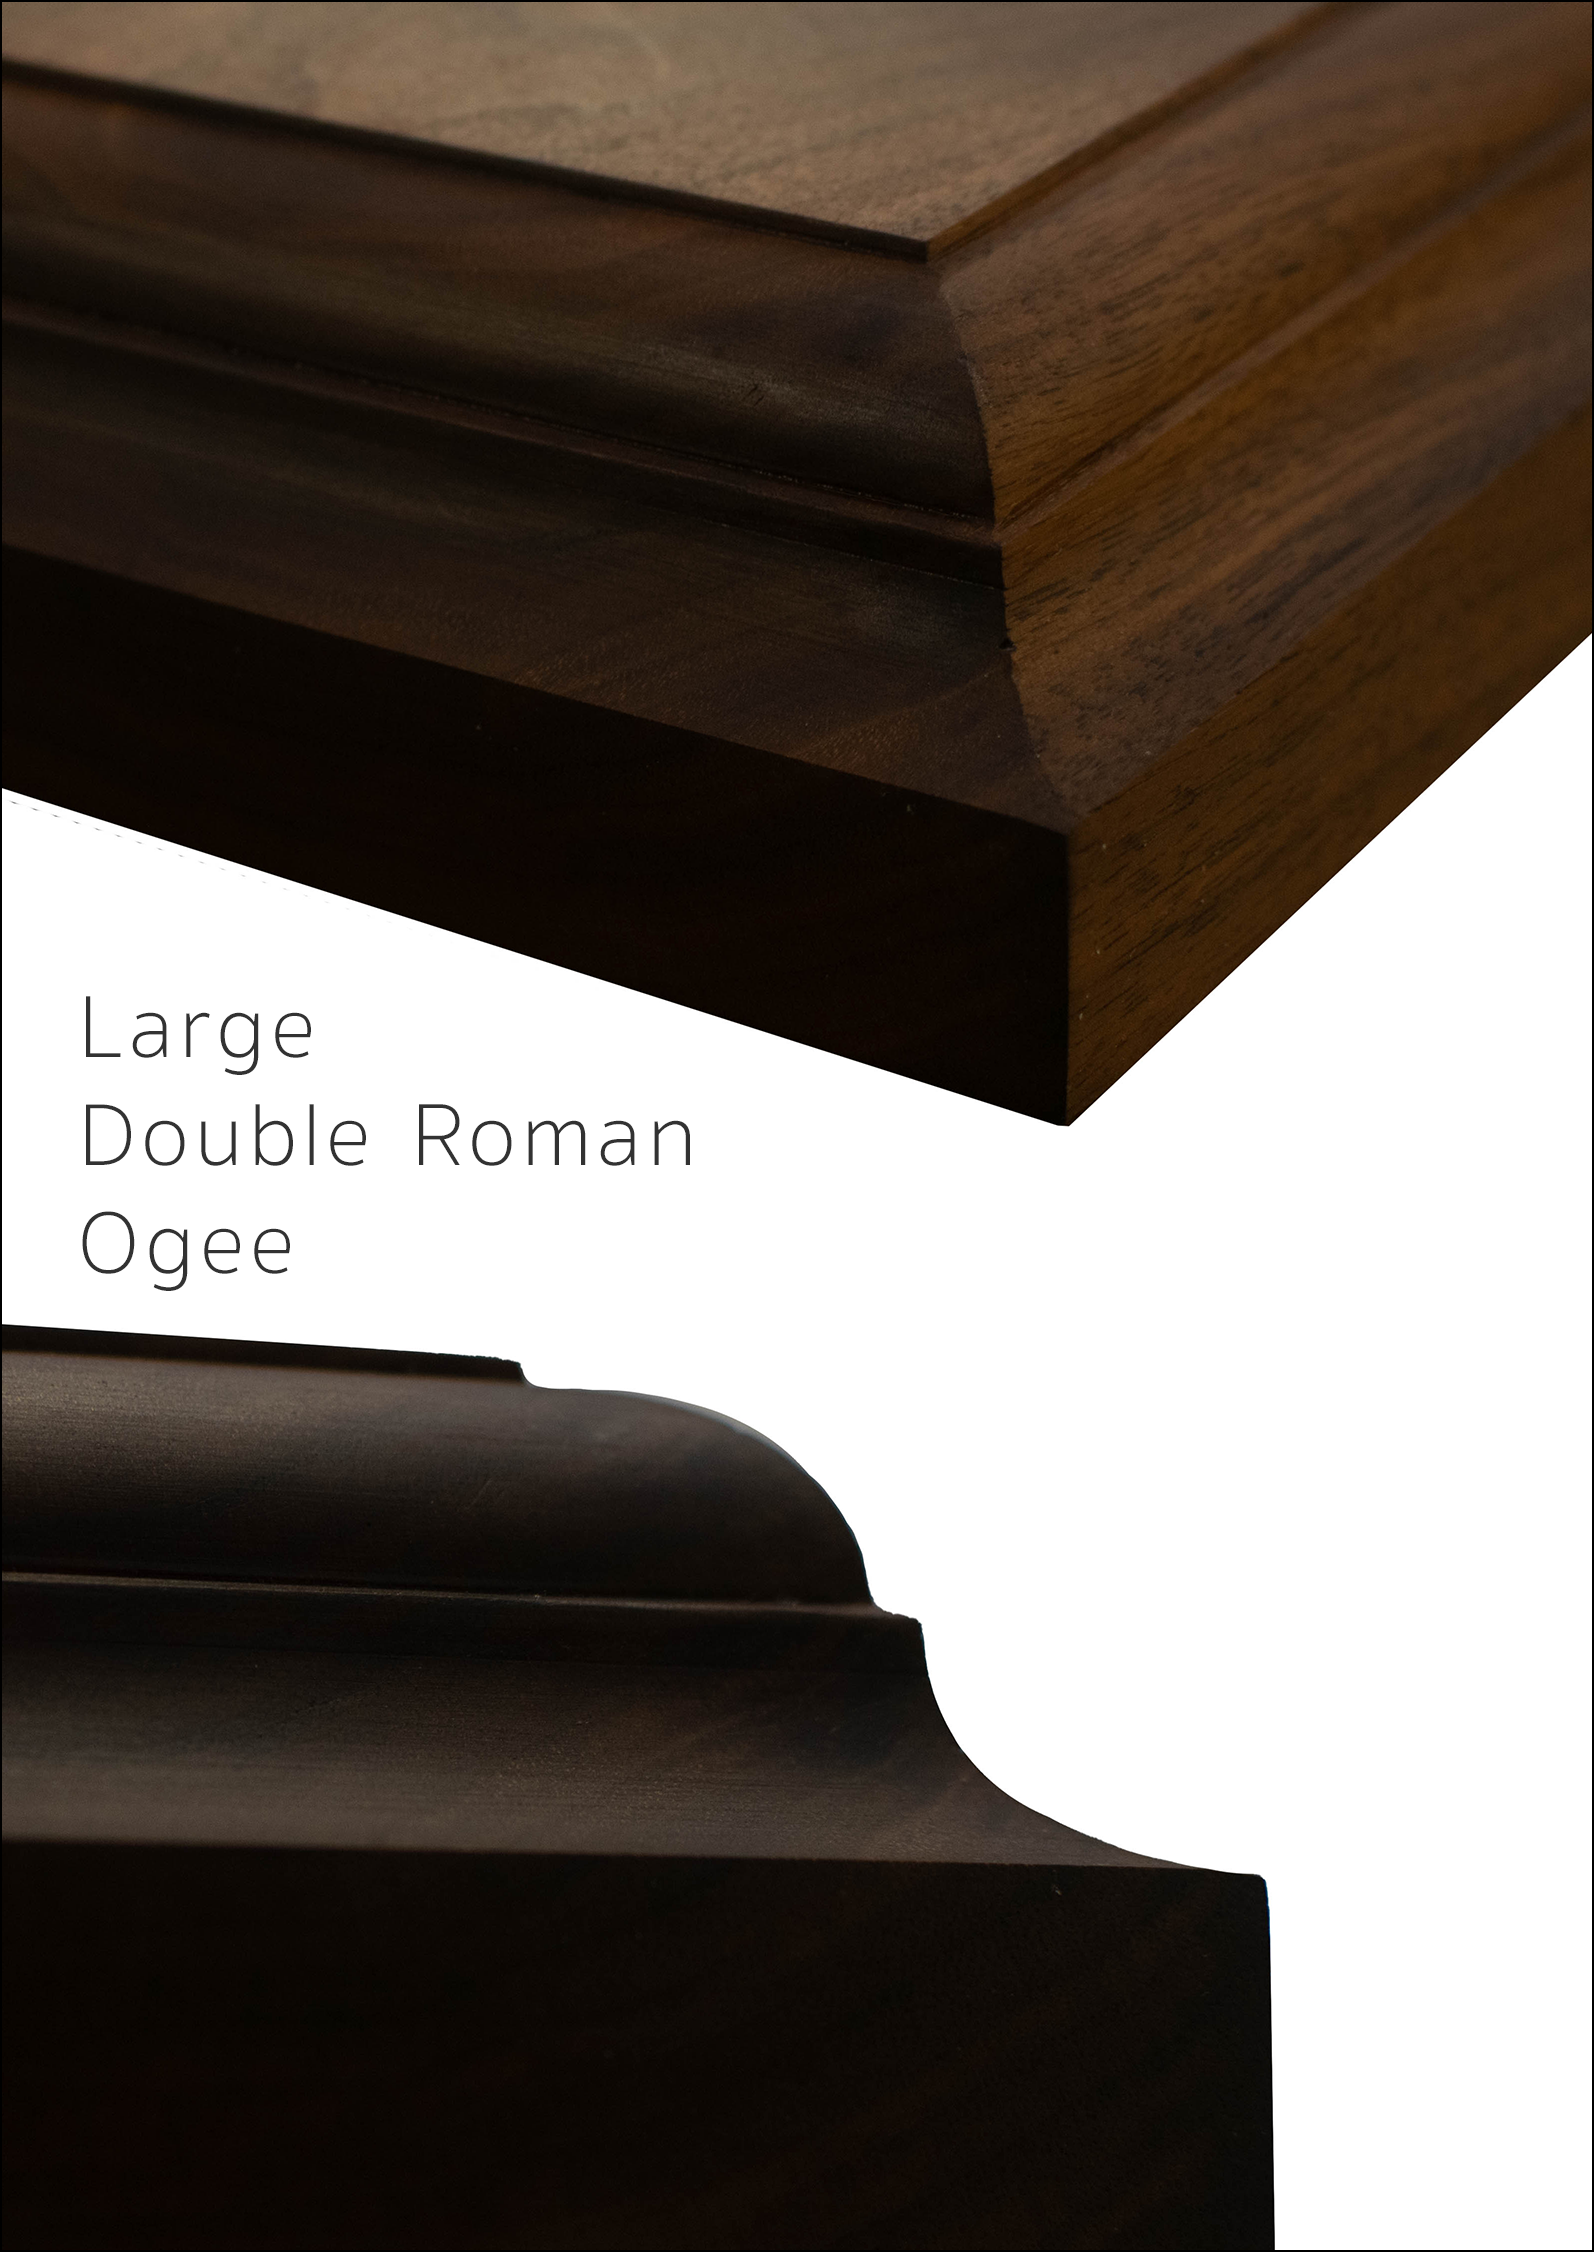 Large Double Roman Ogee